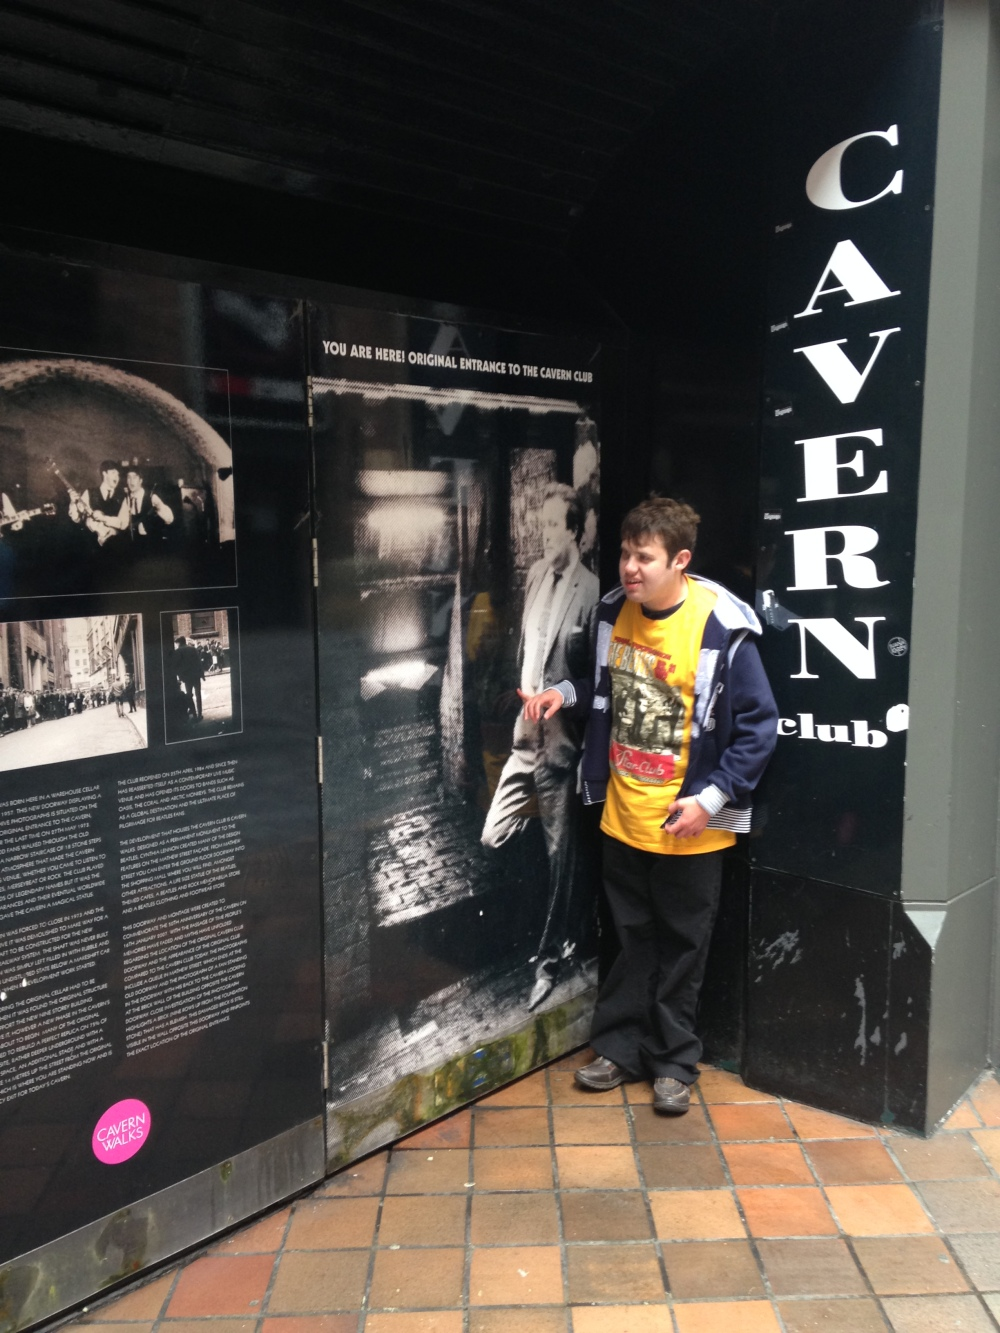 Liverpool Cavern Club 1d